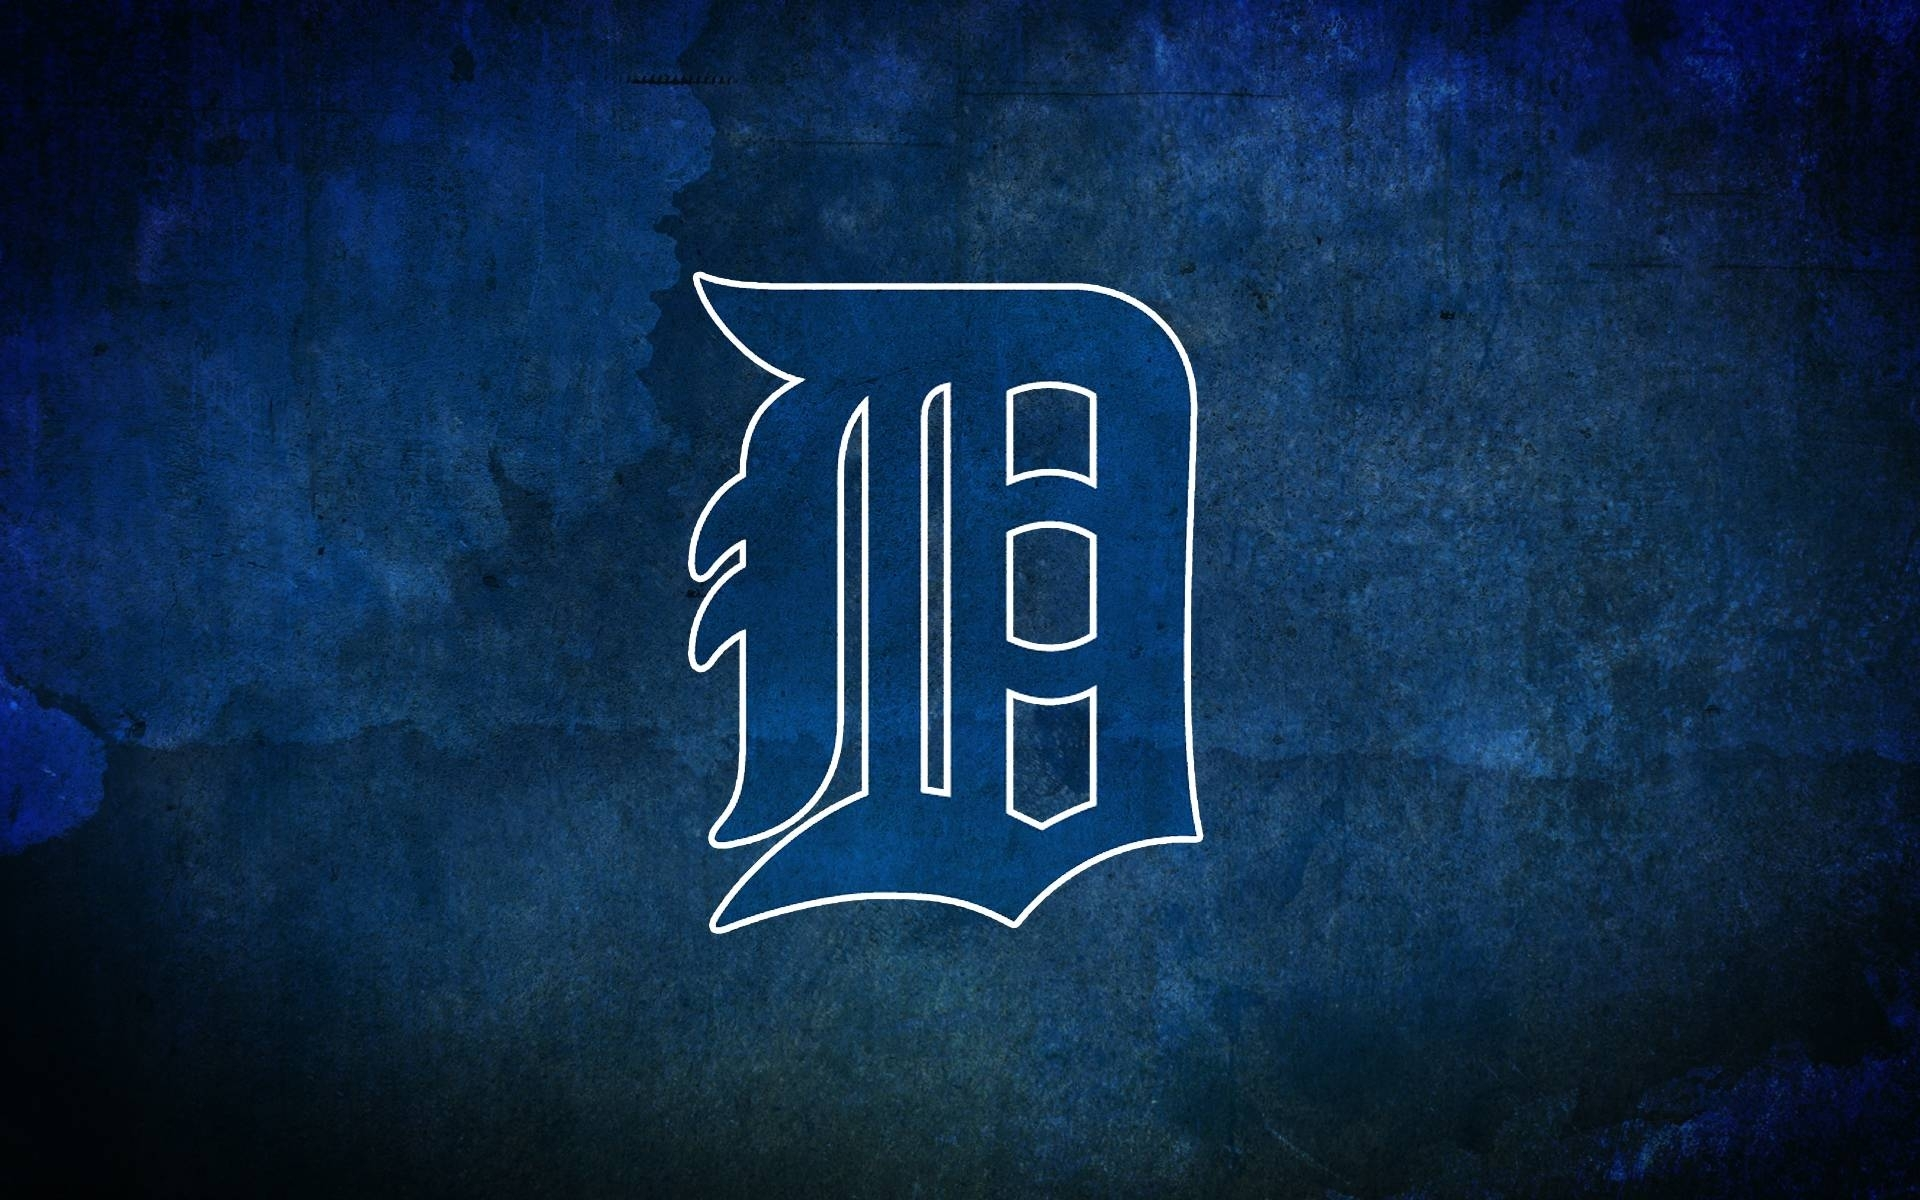 detroit tigers wallpapers - wallpaper cave